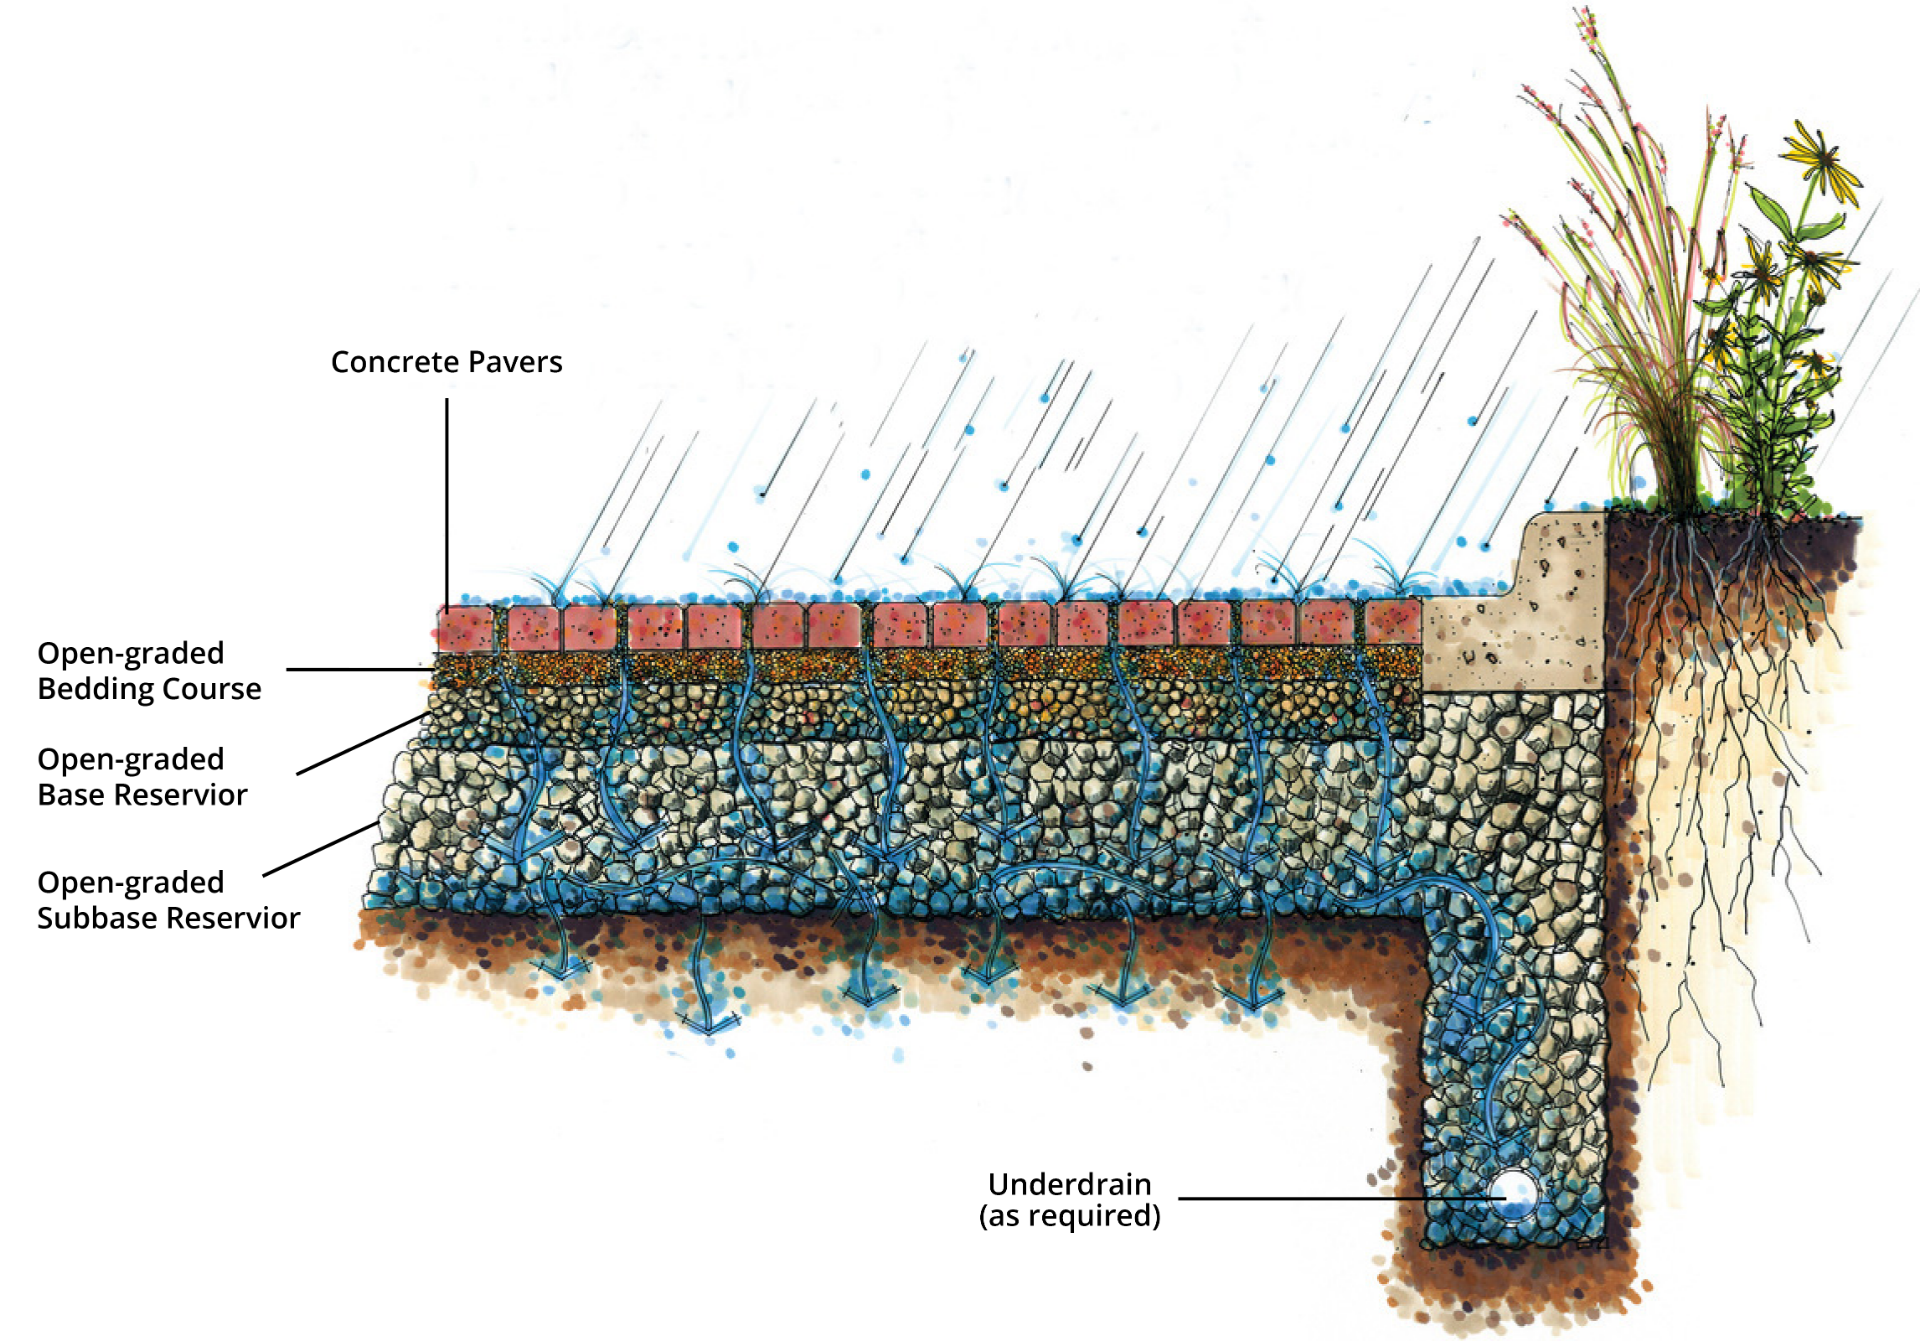 Permeable Paver Diagram.png